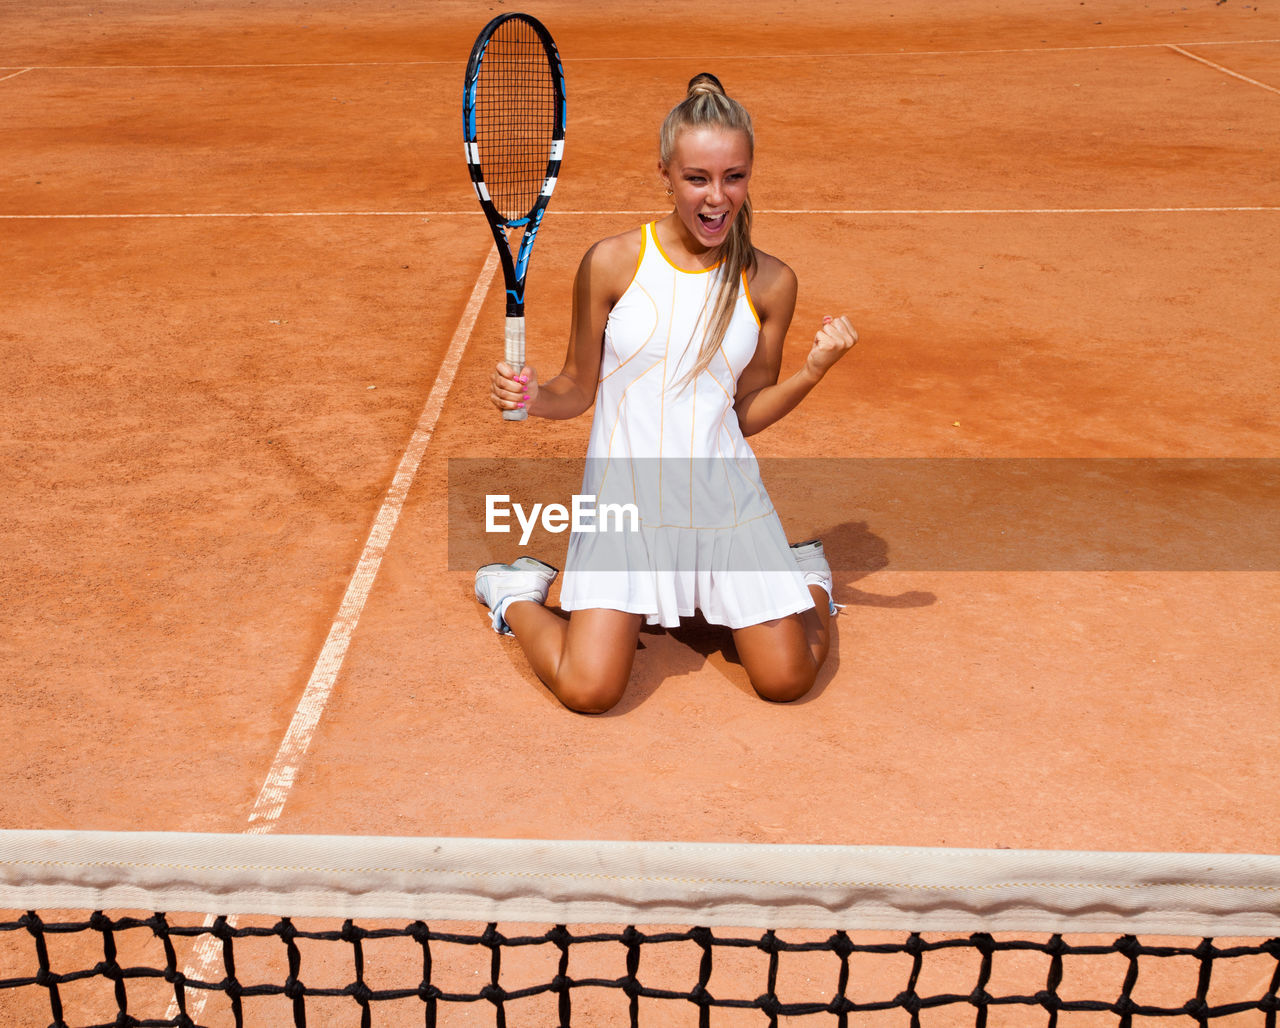 tennis, racket, tennis racket, sport, court, one person, tennis ball, women, tennis net, young adult, clothing, playing, front view, ball, young women, motion, adult, holding